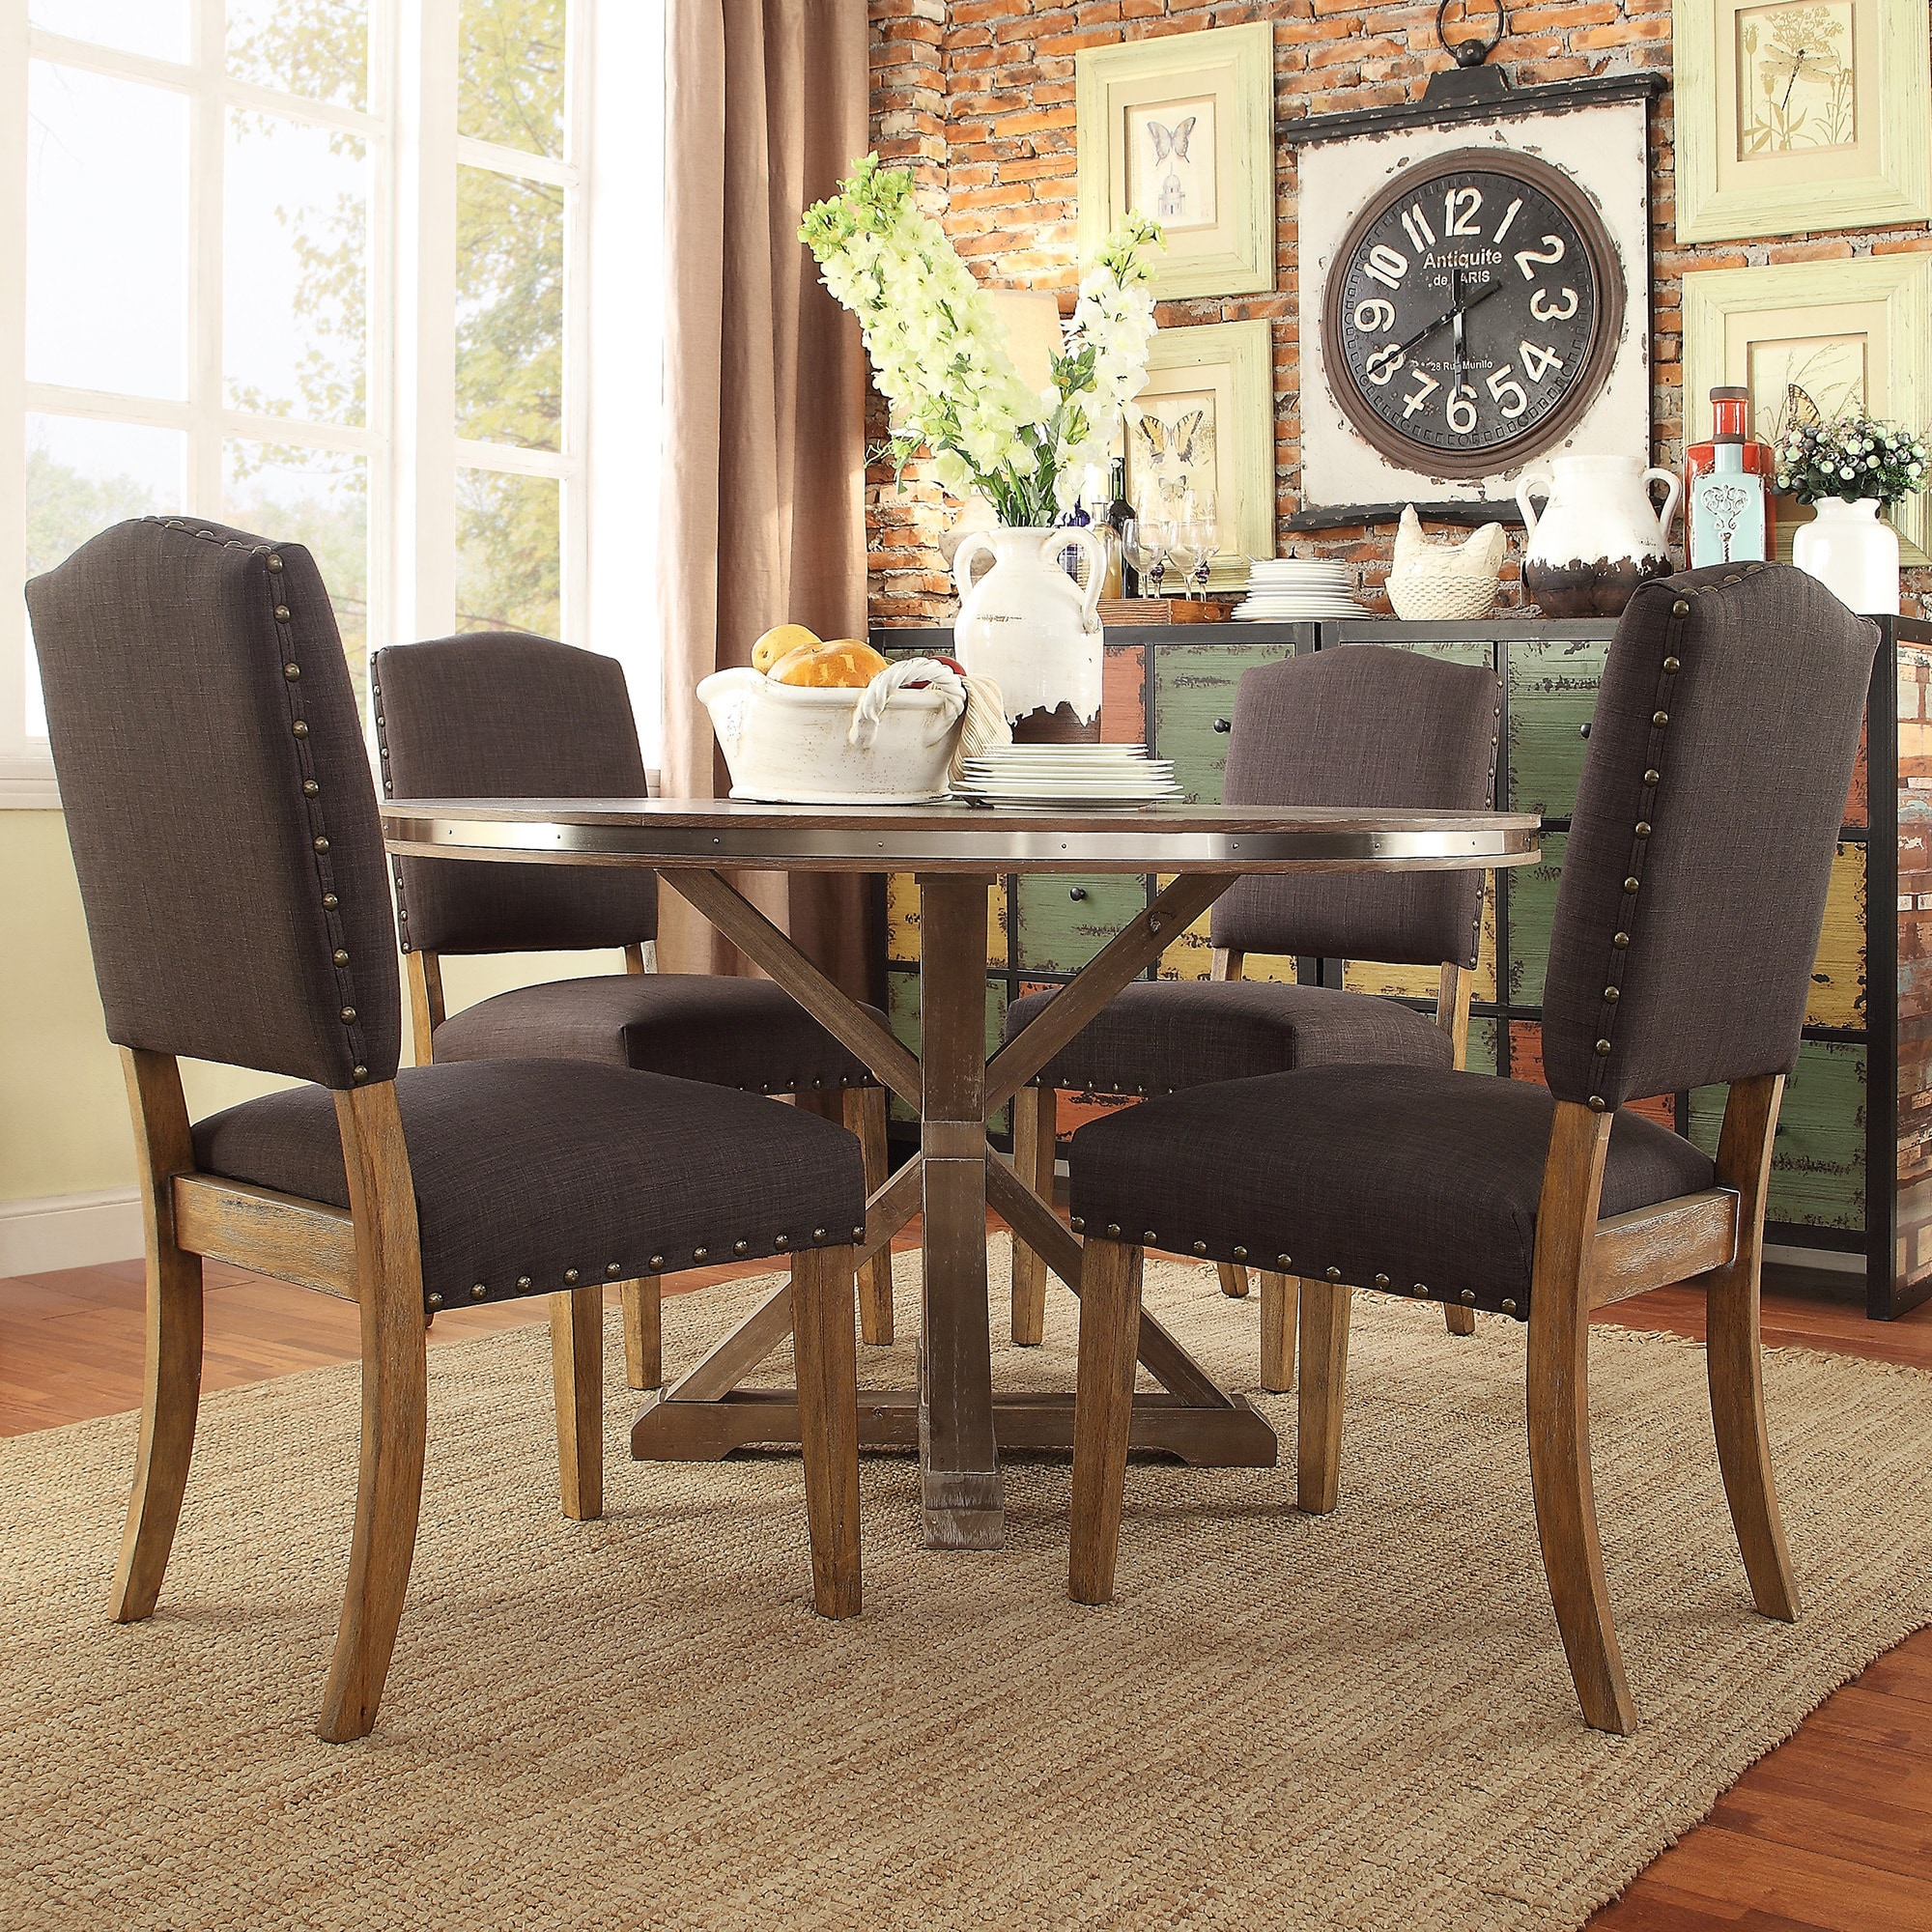 Abbott Rustic Stainless Steel Strap Oak Trestle Dining Table By Inspire Q Free Shipping Today 10111071